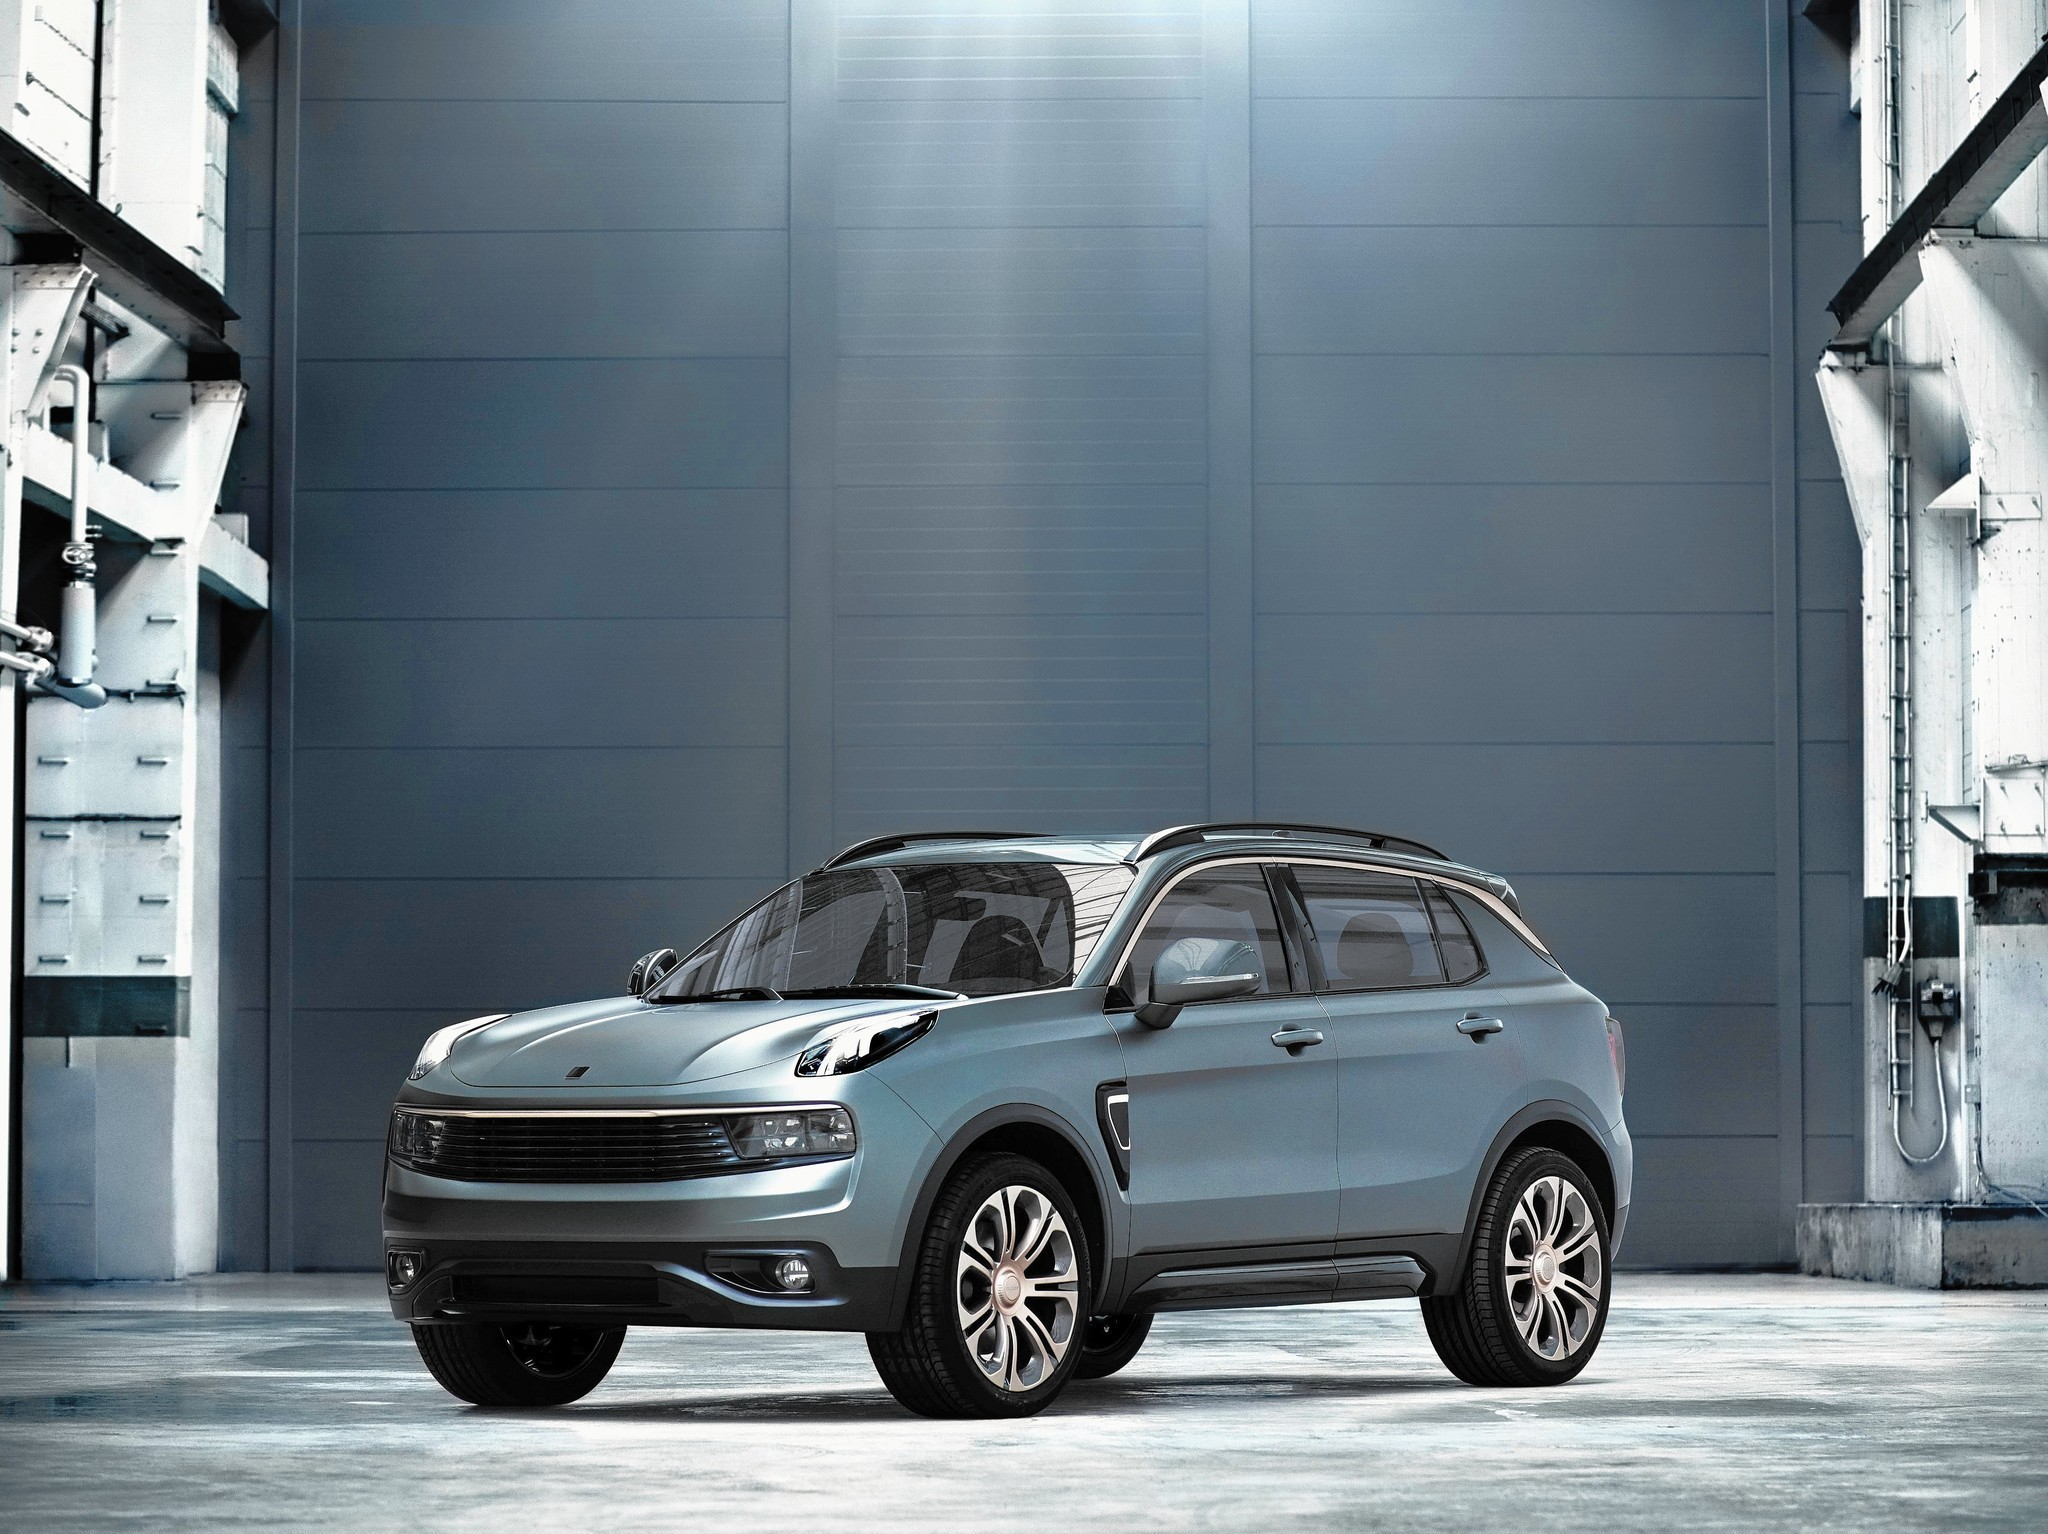 Corporate Car Online: Would You Buy A New Car Online? Lynk & Co Is Betting On It